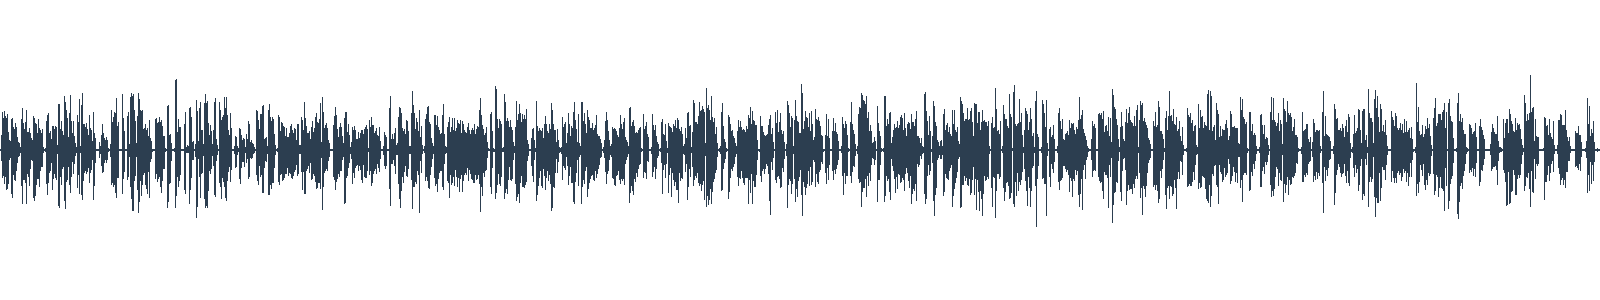 Doktor Mráz waveform